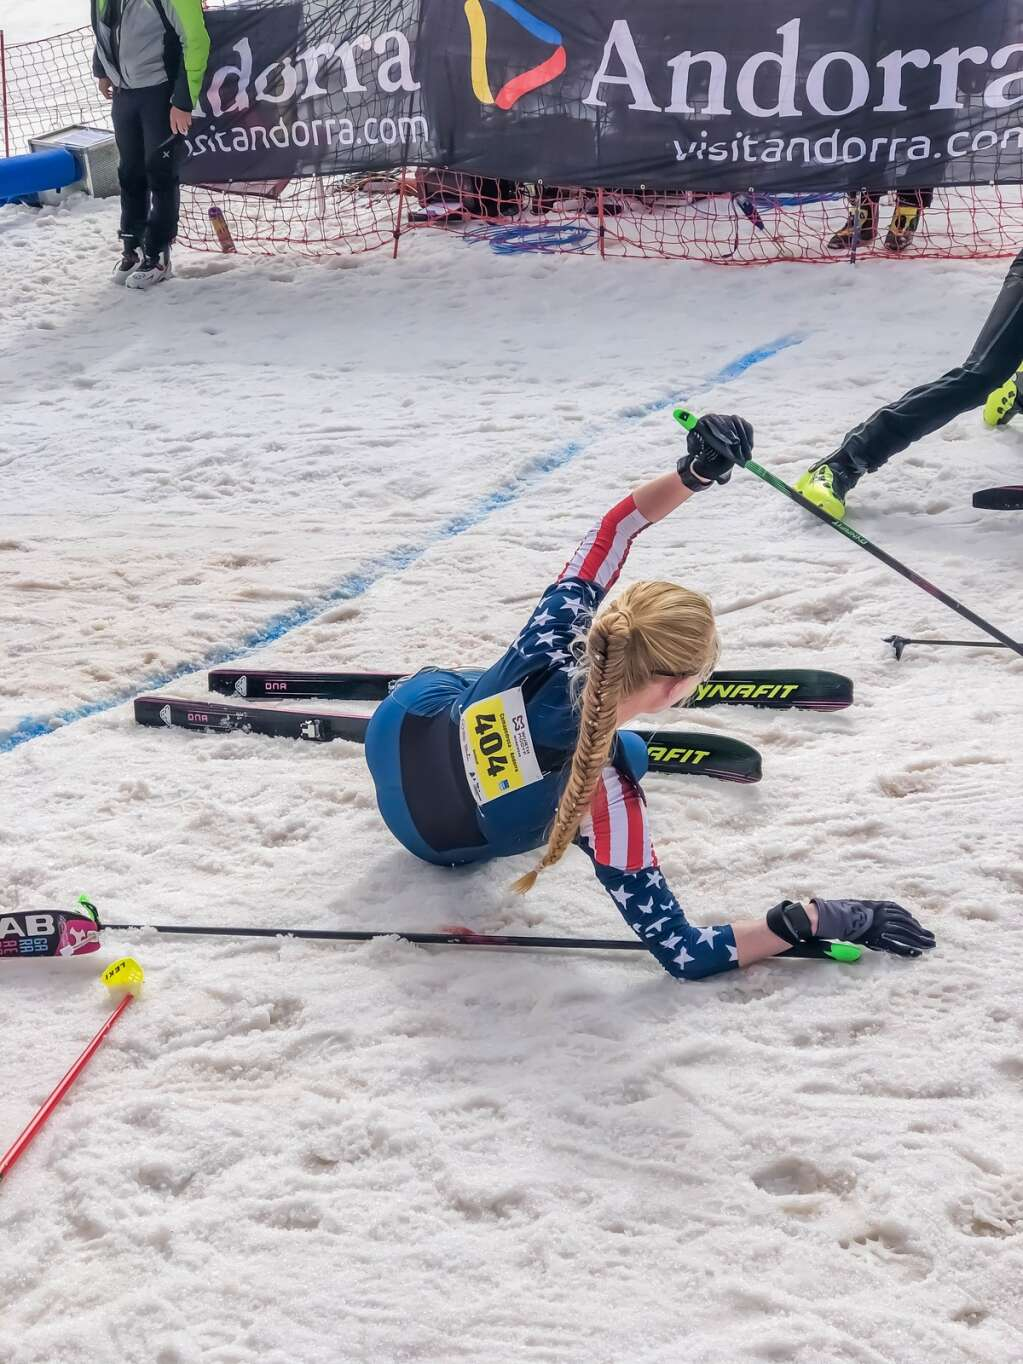 Summit County resident Grace Staberg recovers at the end of the International Ski Mountaineering Federation vertical U-20 women's world championship race Thursday, March 4, in Andorra, where she won silver. | Photo by SkiMoStats.com